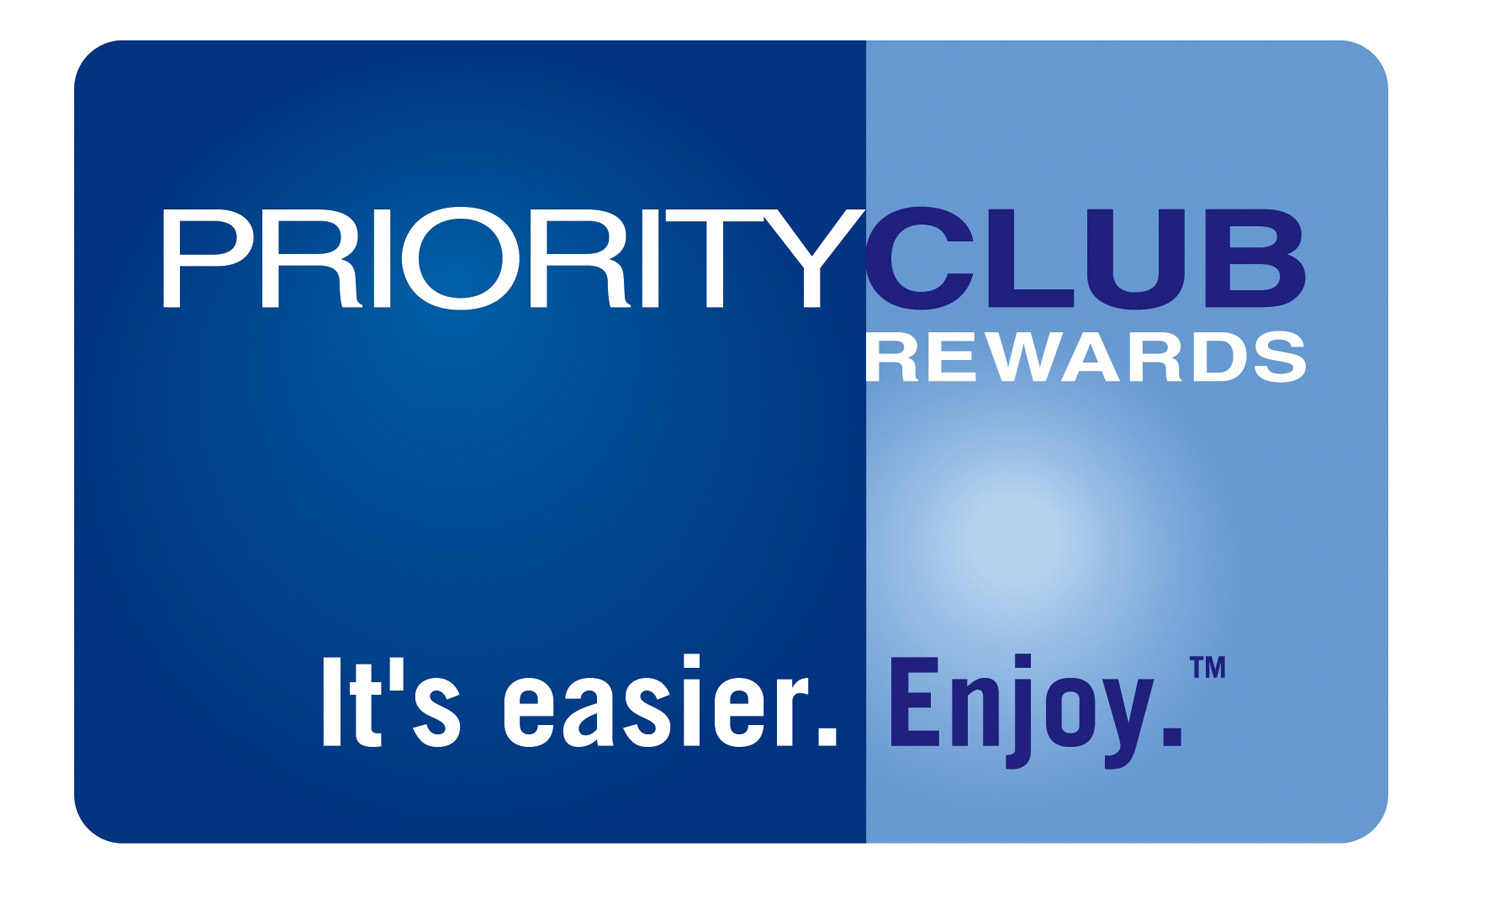 Priority Rewards Credit Card 1 Priority Rewards Business Credit Card 1 With the Priority Rewards Credit Card, you can earn CashPoints 2 for everyday purchases, and your CashPoints don't expire as long as you make purchases with your card or redeem at least once every 24 months.